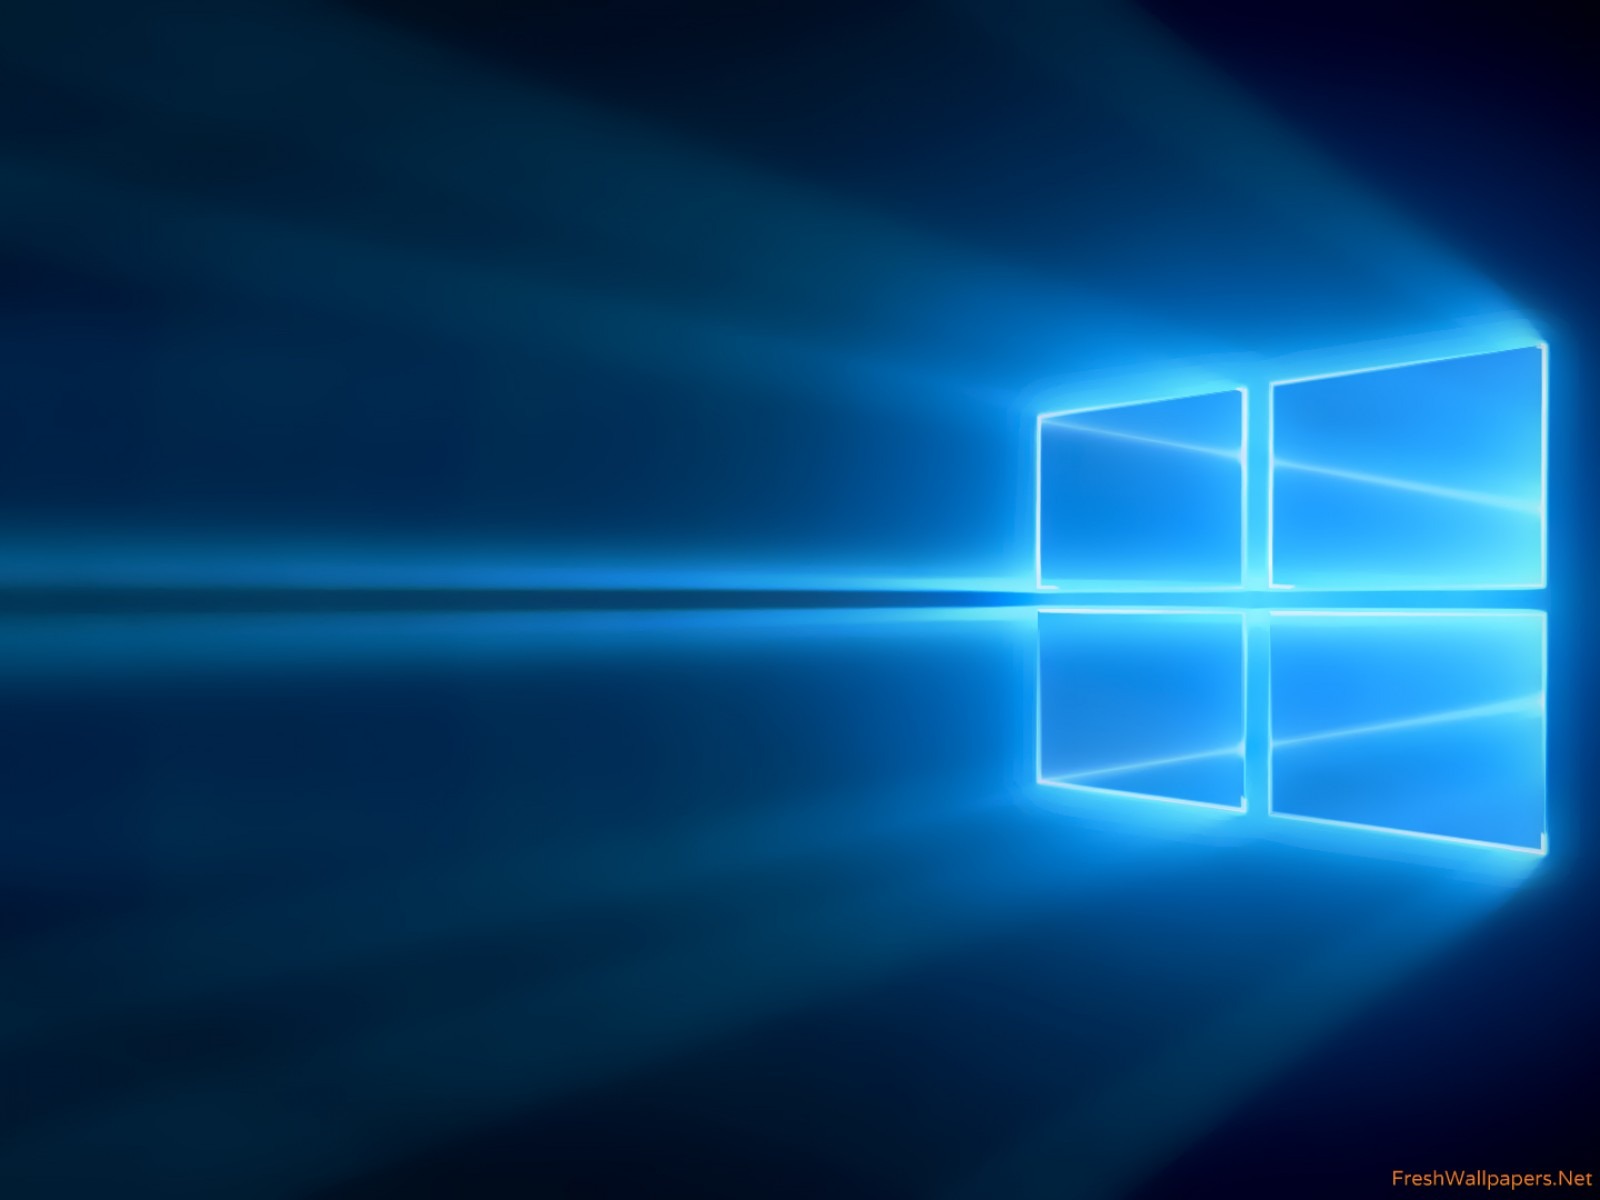 Windows 10 Official Desktop Background wallpapers Freshwallpapers 1600x1200